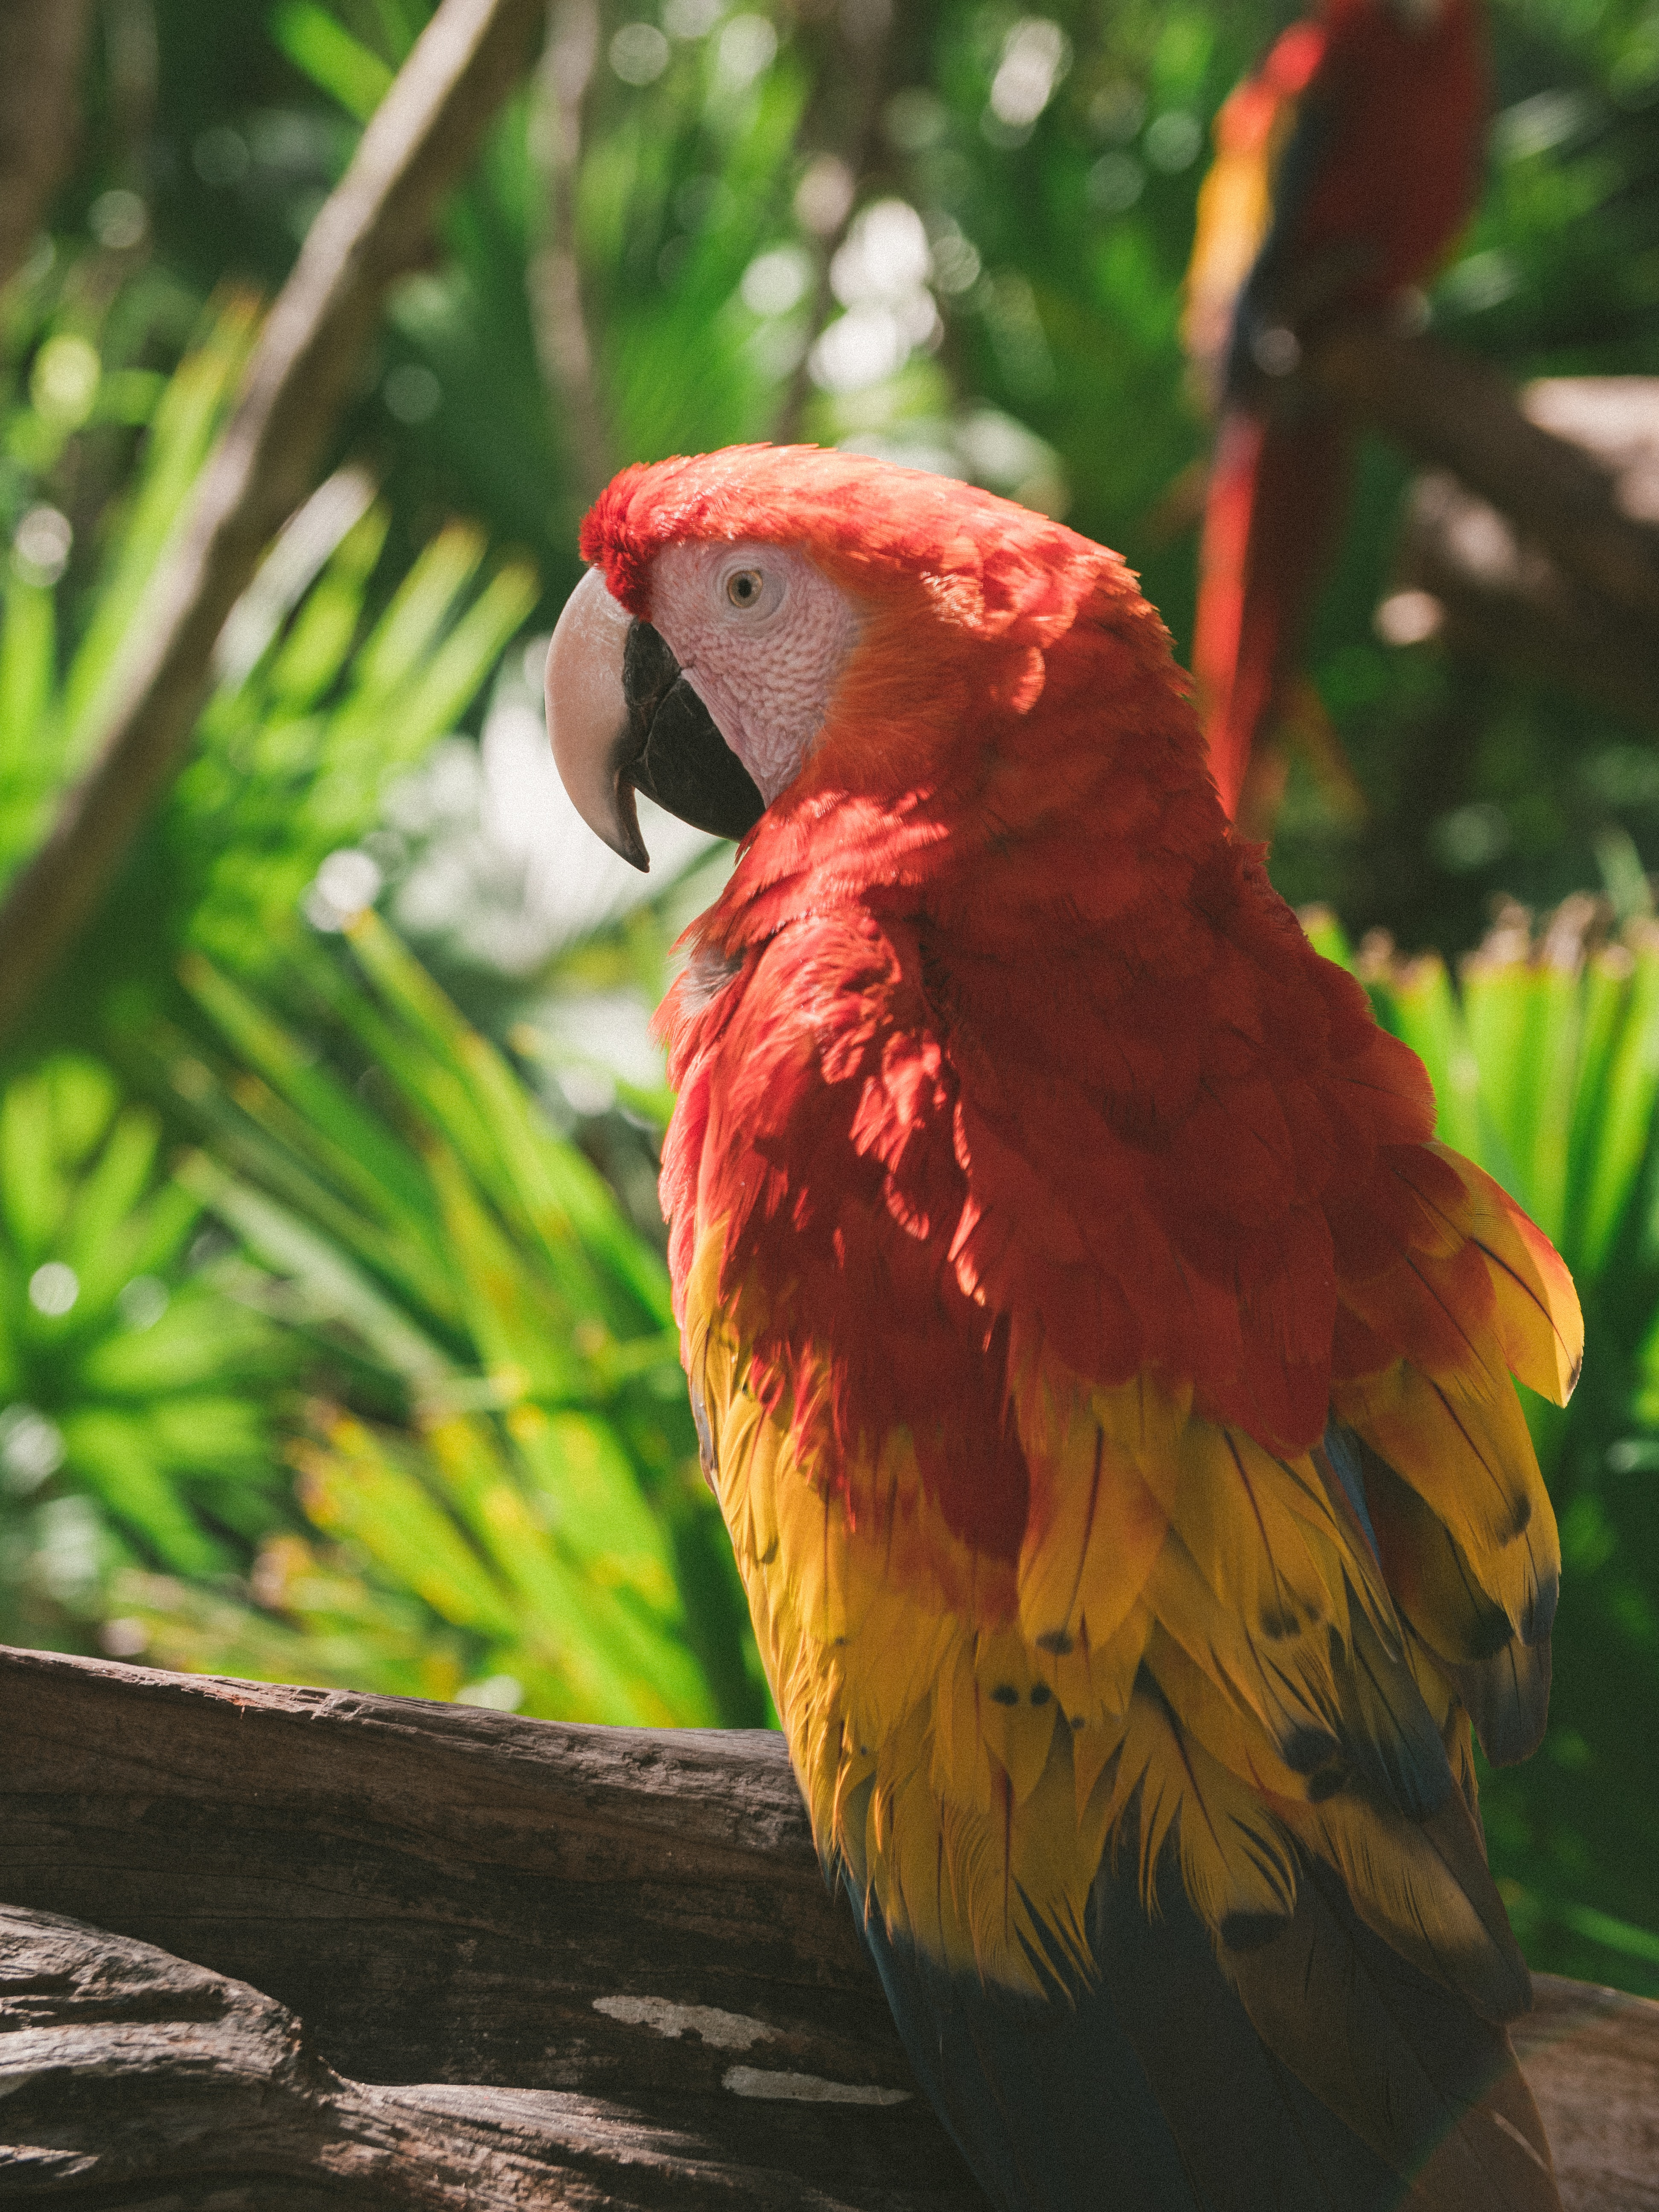 60173 download wallpaper Animals, Macaw, Parrots, Multicolored, Motley, Bird screensavers and pictures for free